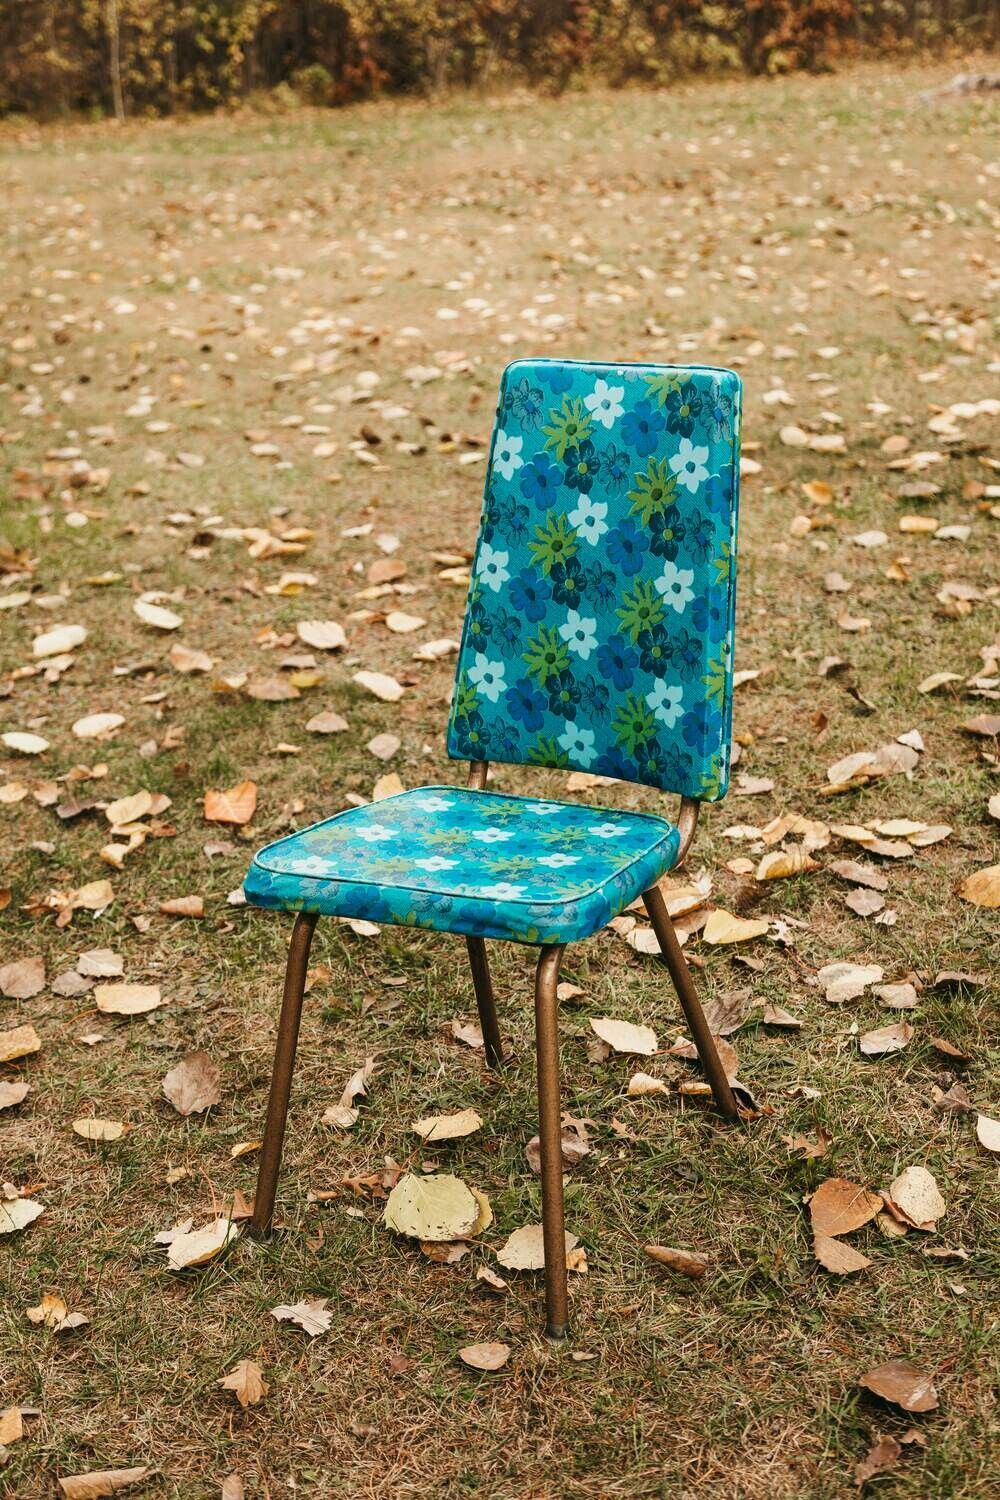 Blue and Green Floral Chairs